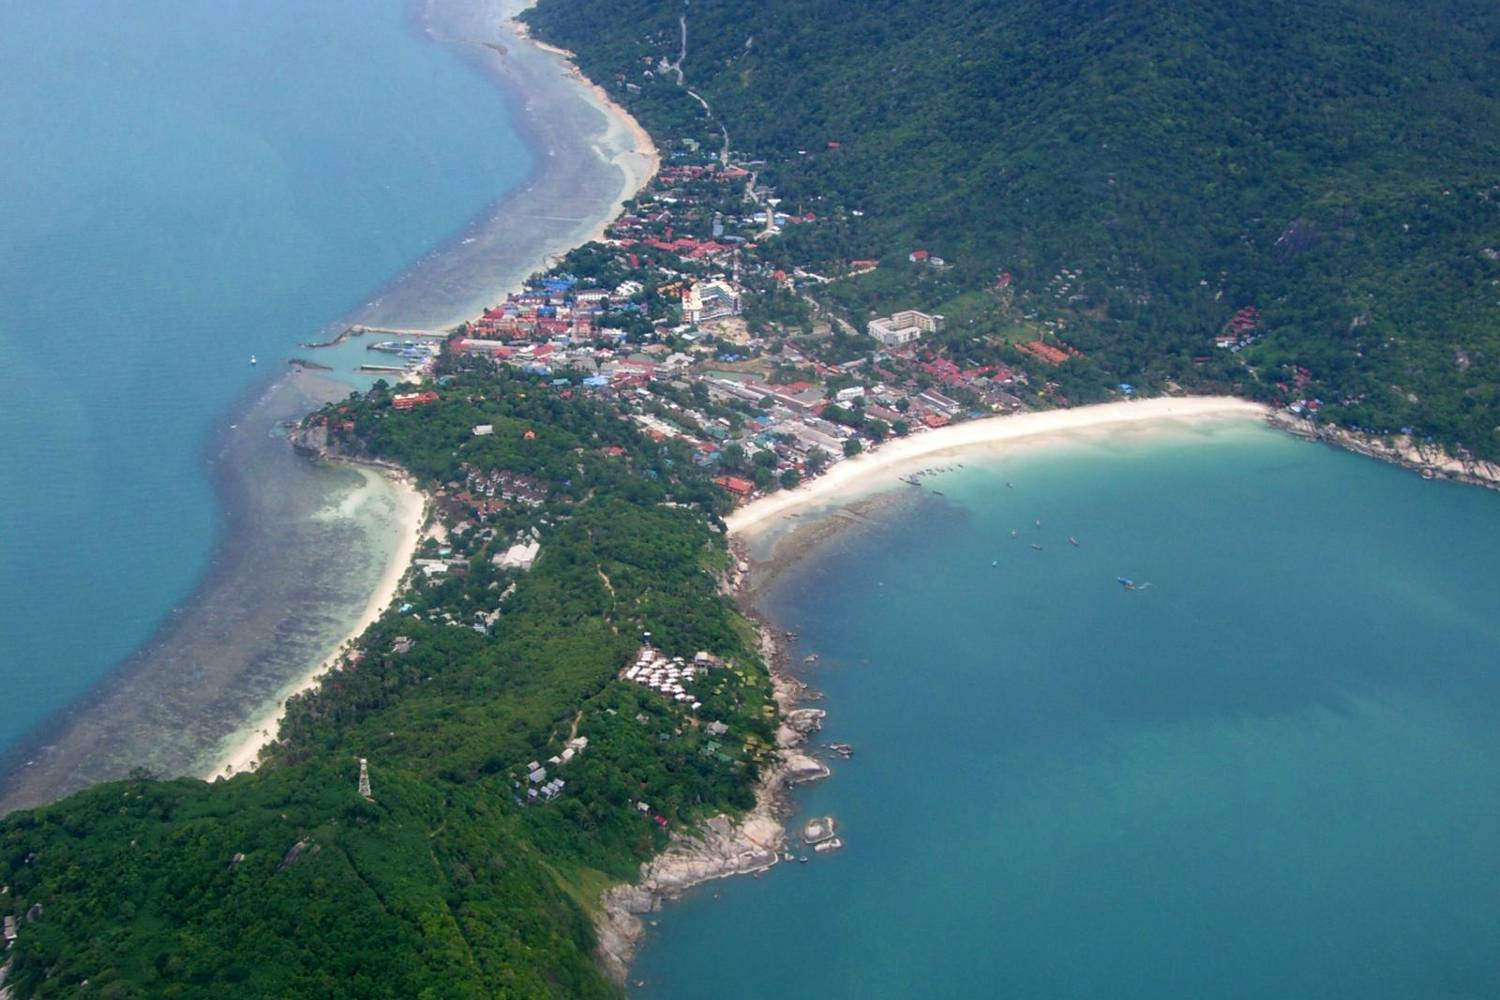 Aerial view of Haad Rin in Koh Phangan